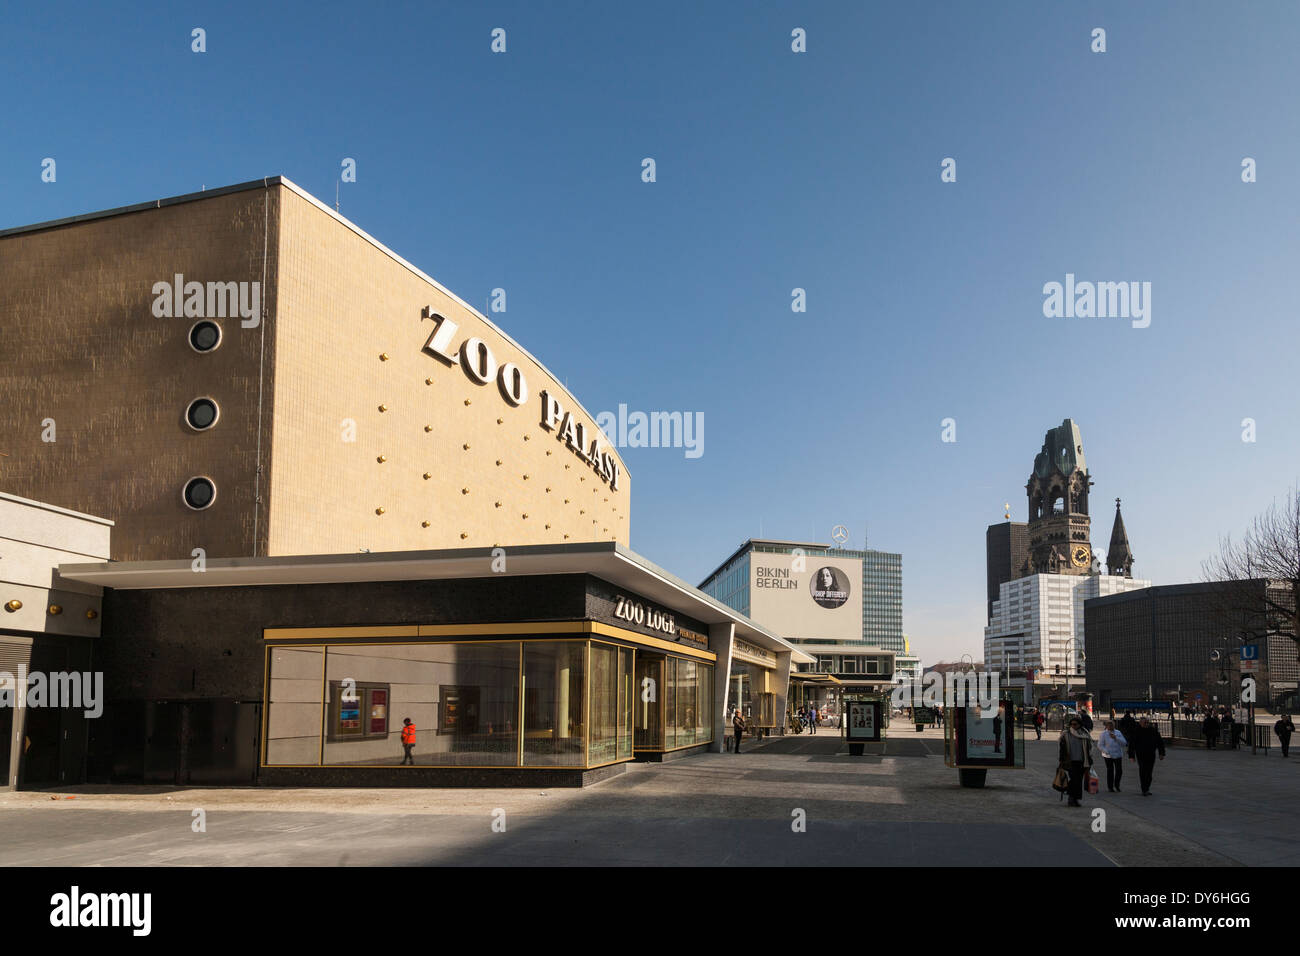 Zoologischer Garten Berlin Kino Zoo Palast Stockfotos And Zoo Palast Bilder Alamy